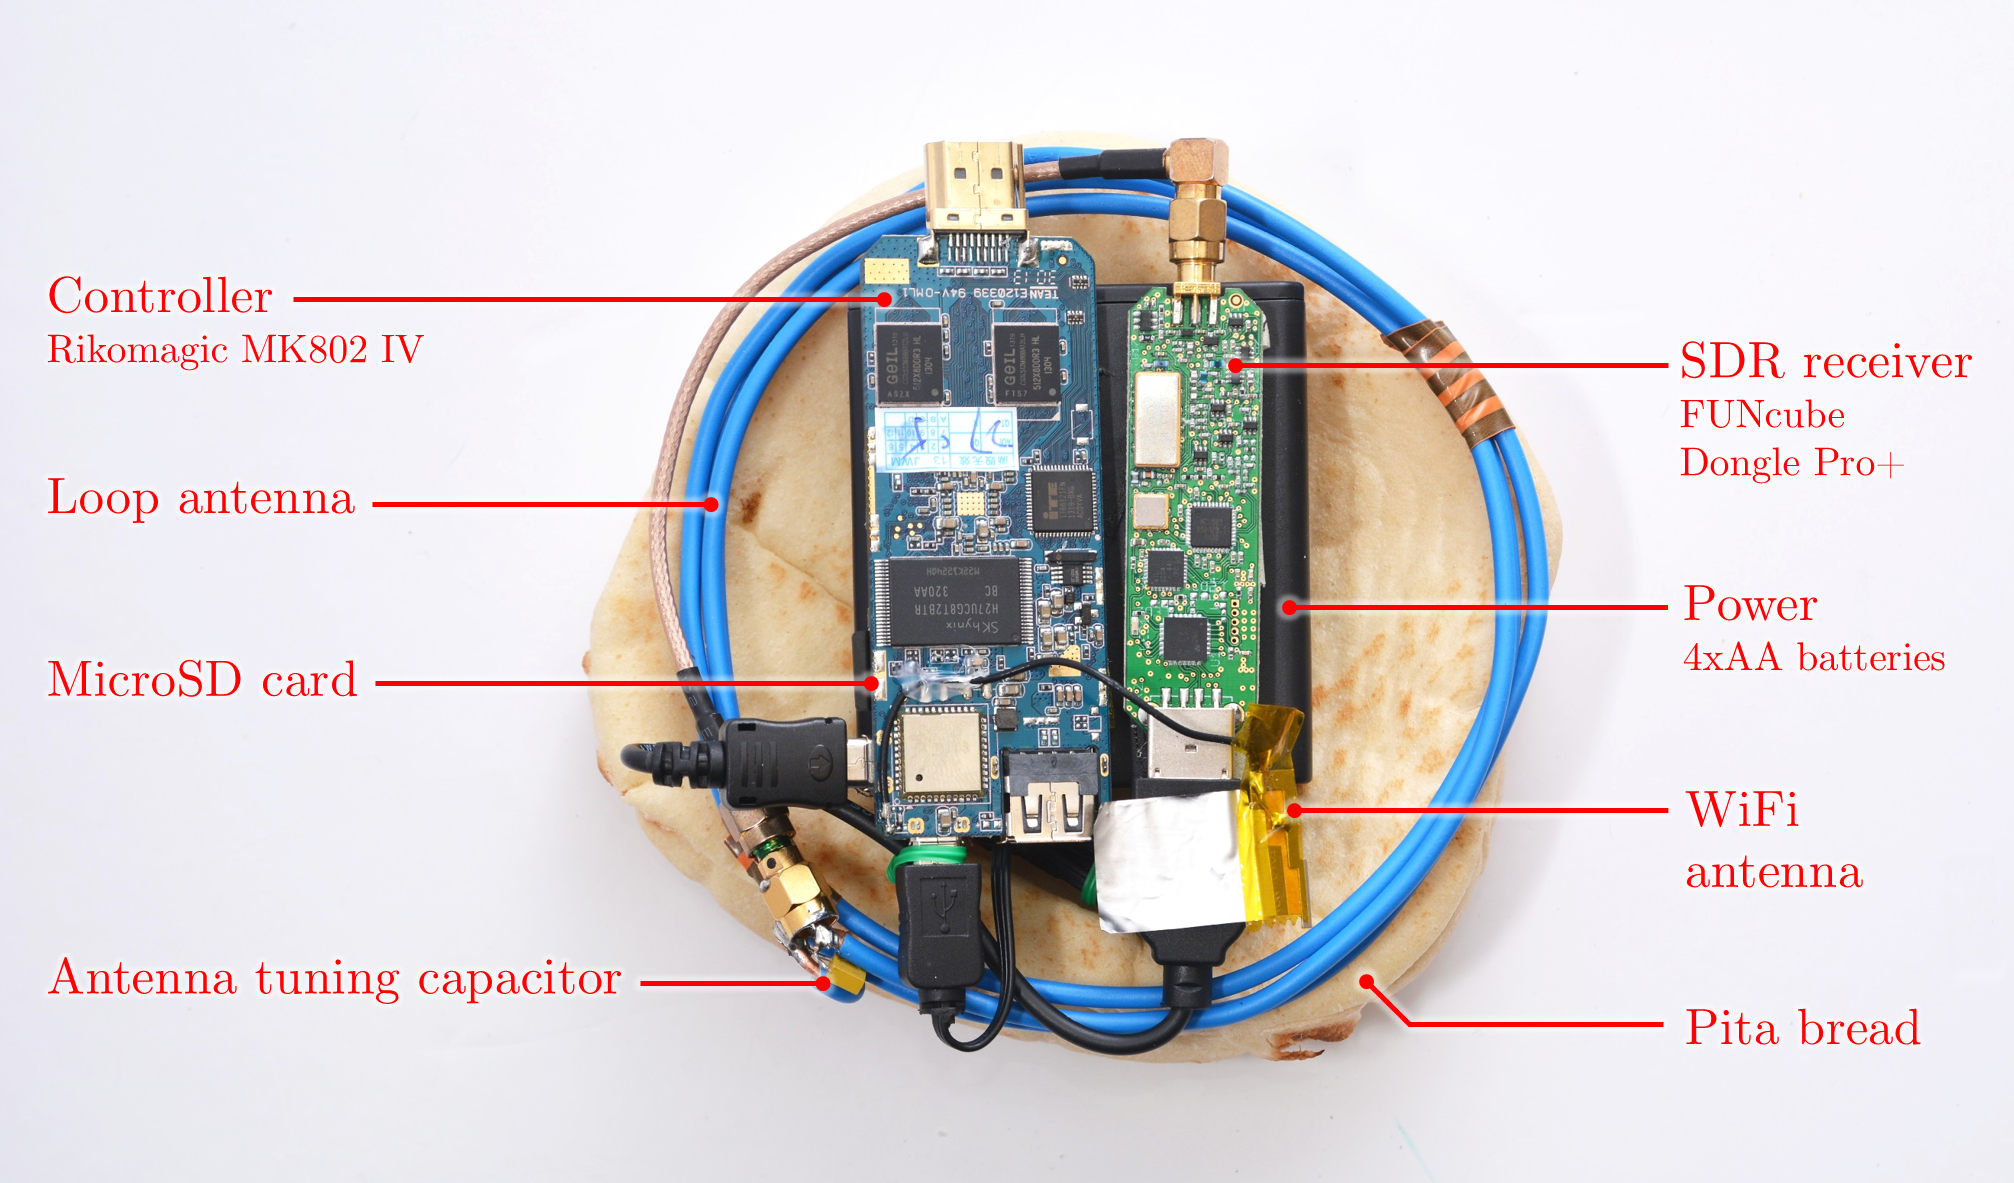 Stealing Keys From Pcs Using A Radio Cheap Electromagnetic Attacks Circuits Gt Ac Power Filter And Phone Line Homemade Circuit Pita Device